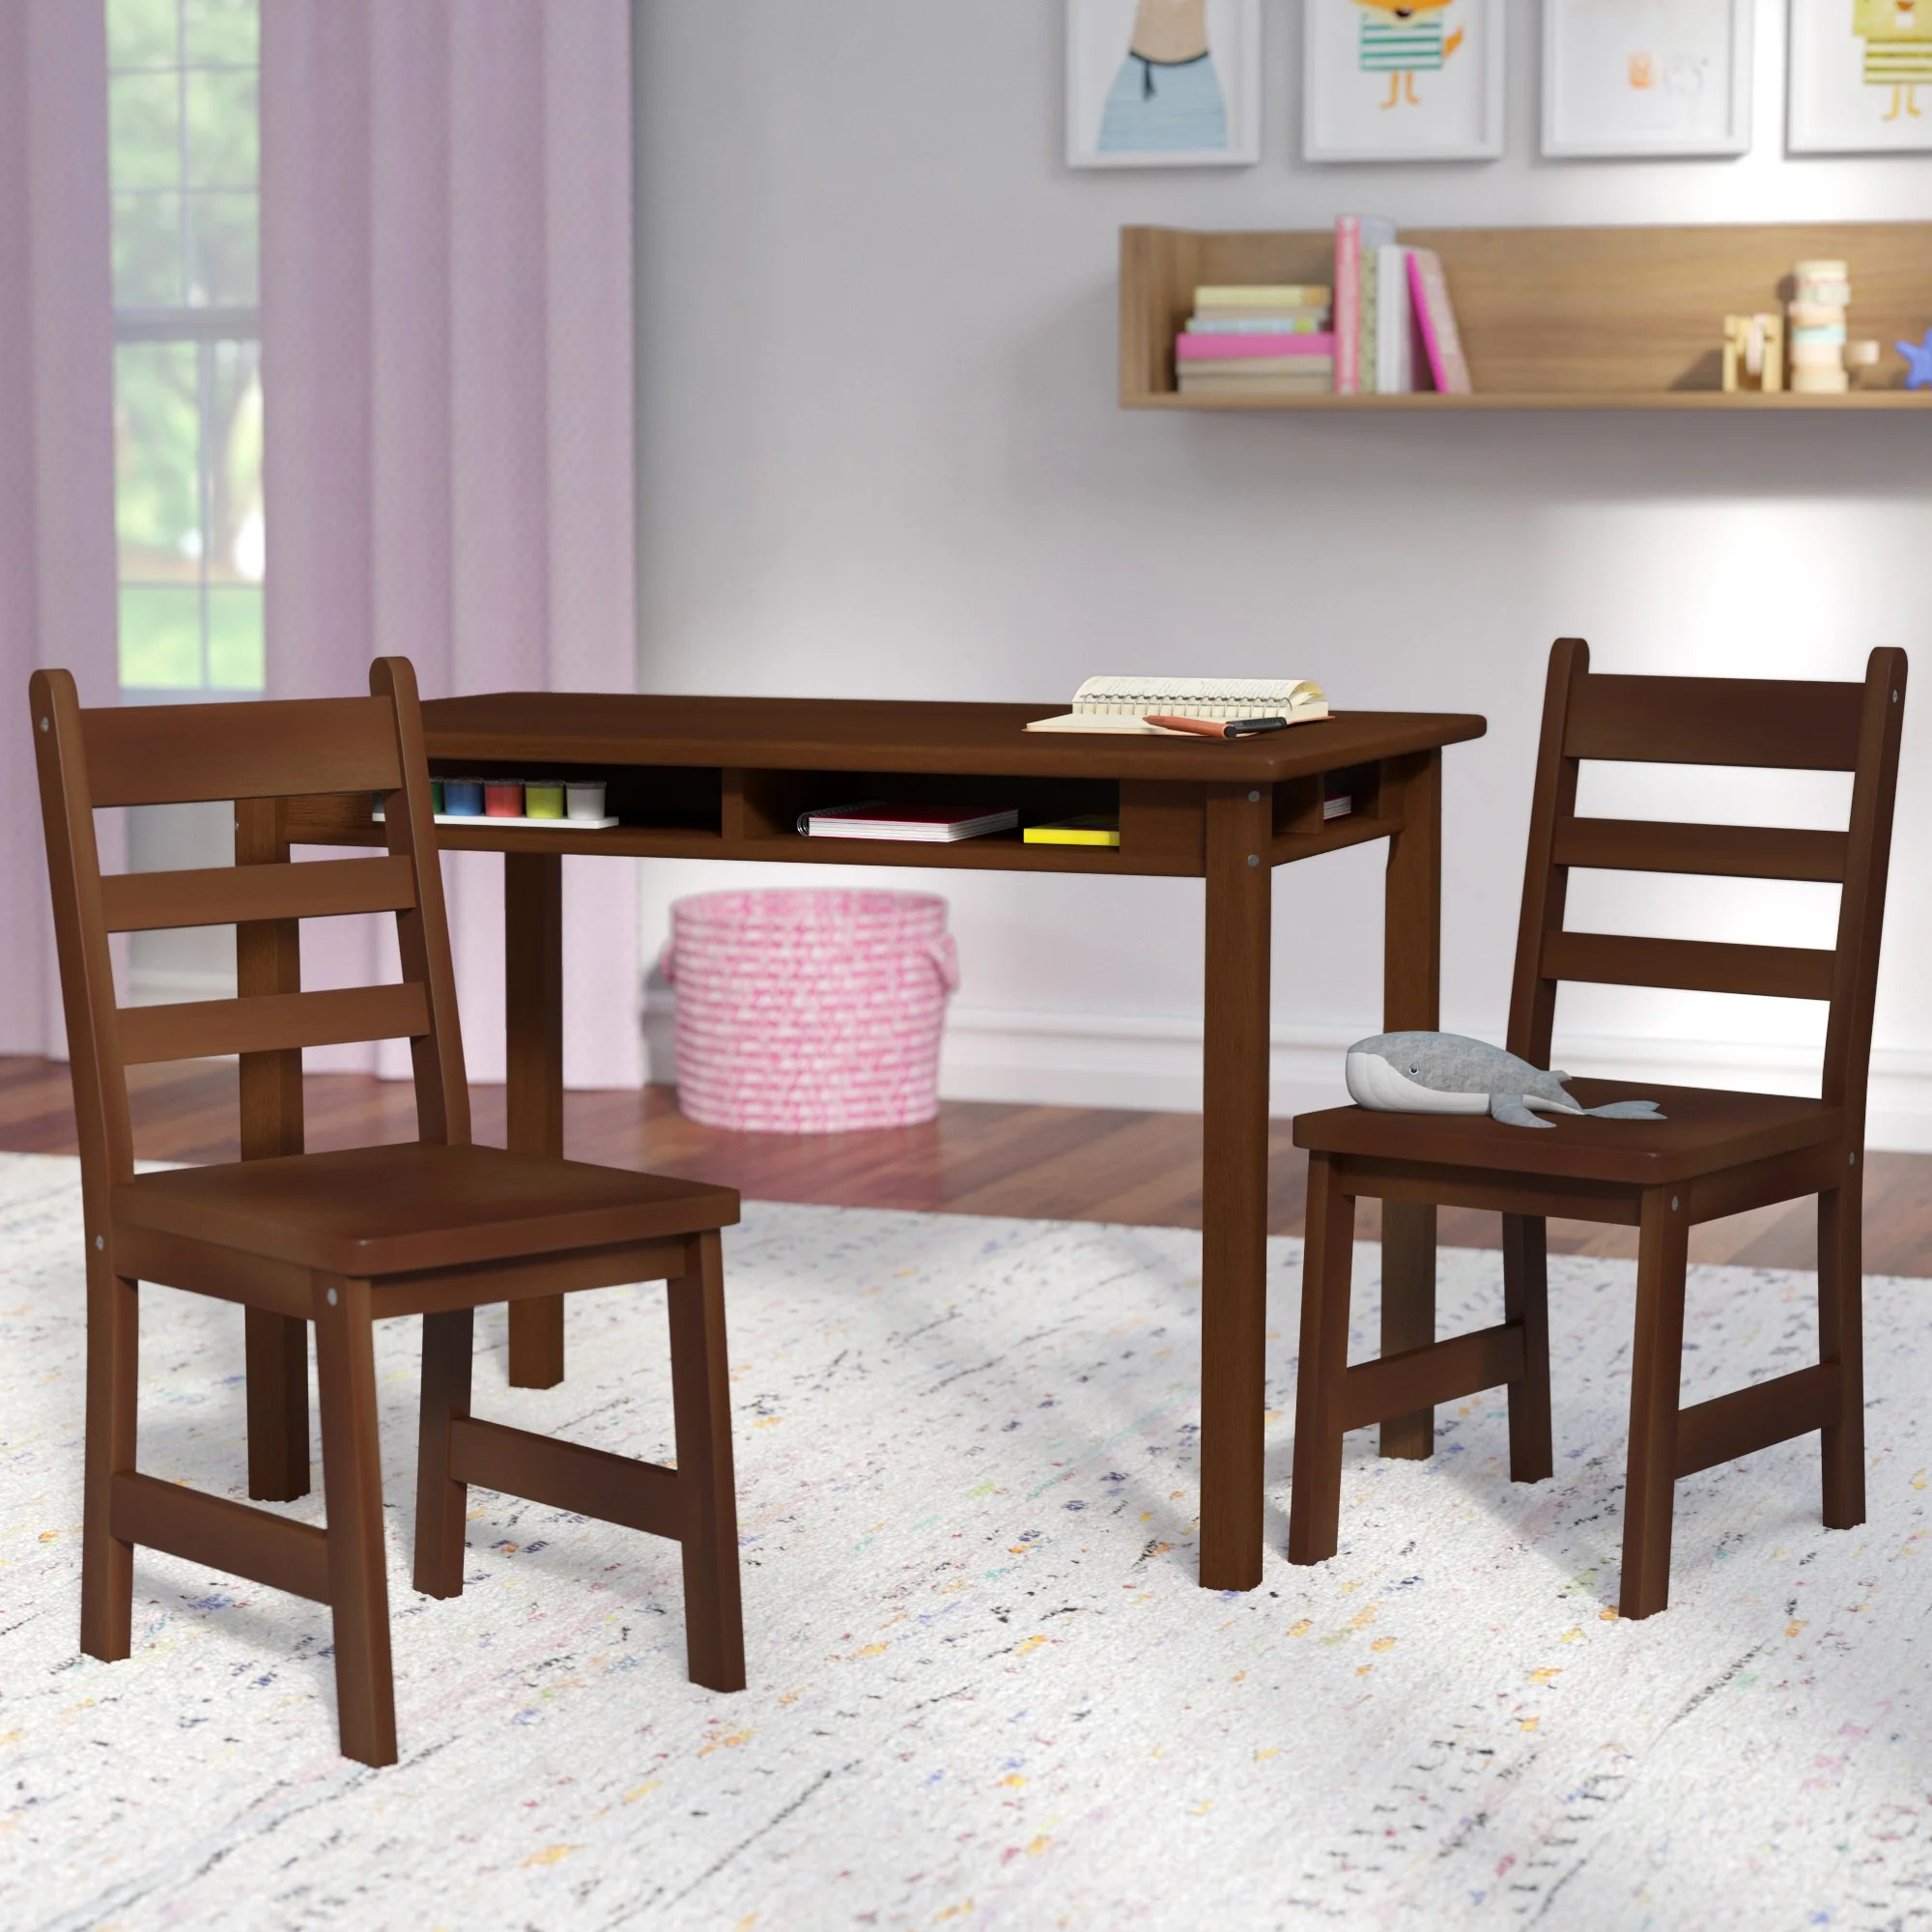 Kids Wood Table And Chairs Alexa Kids 3 Piece Writing Table Chair Set